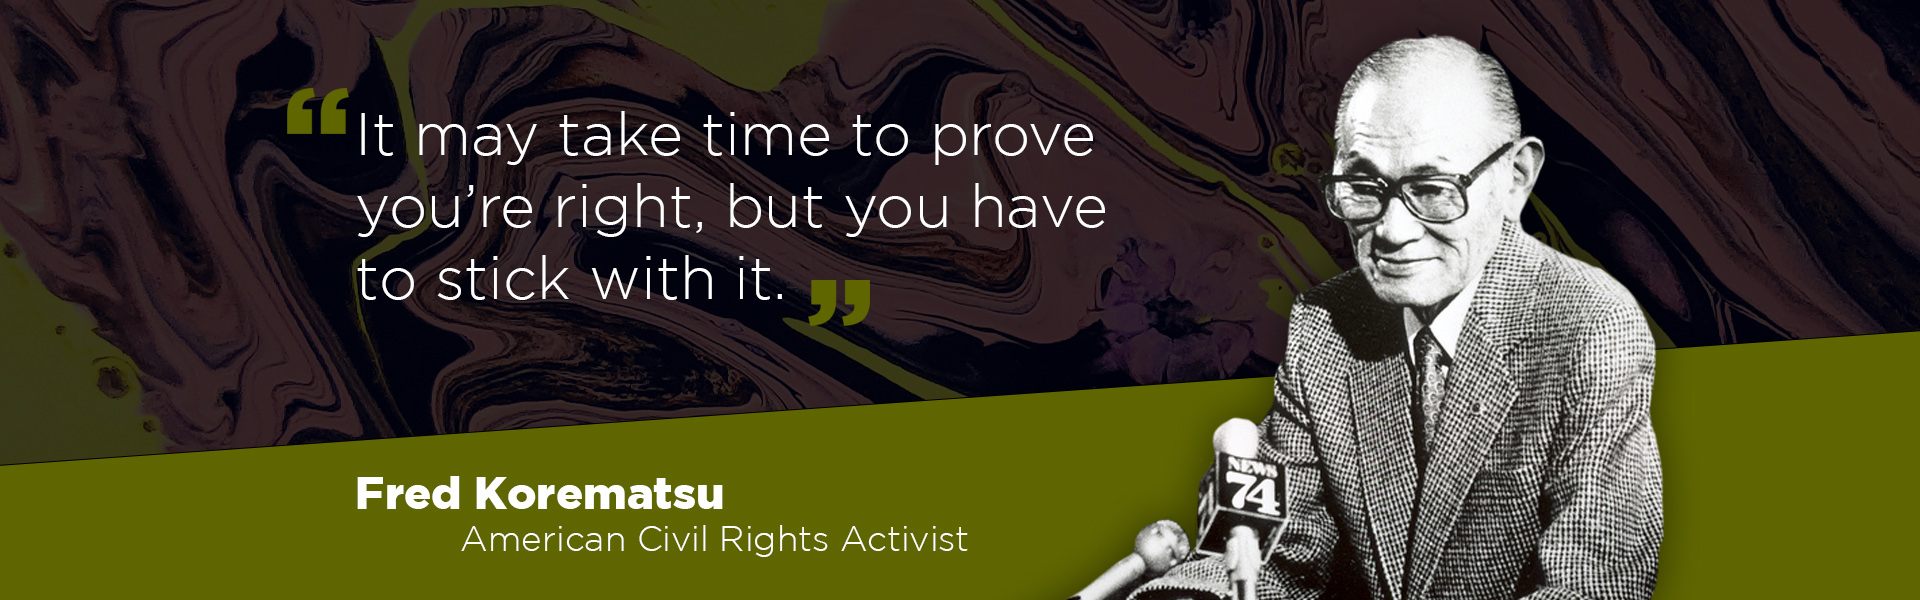 """""""It may take time to prove you're right, but you have to stick with it."""" - Fred Korematsu, American Civil Rights Activist"""